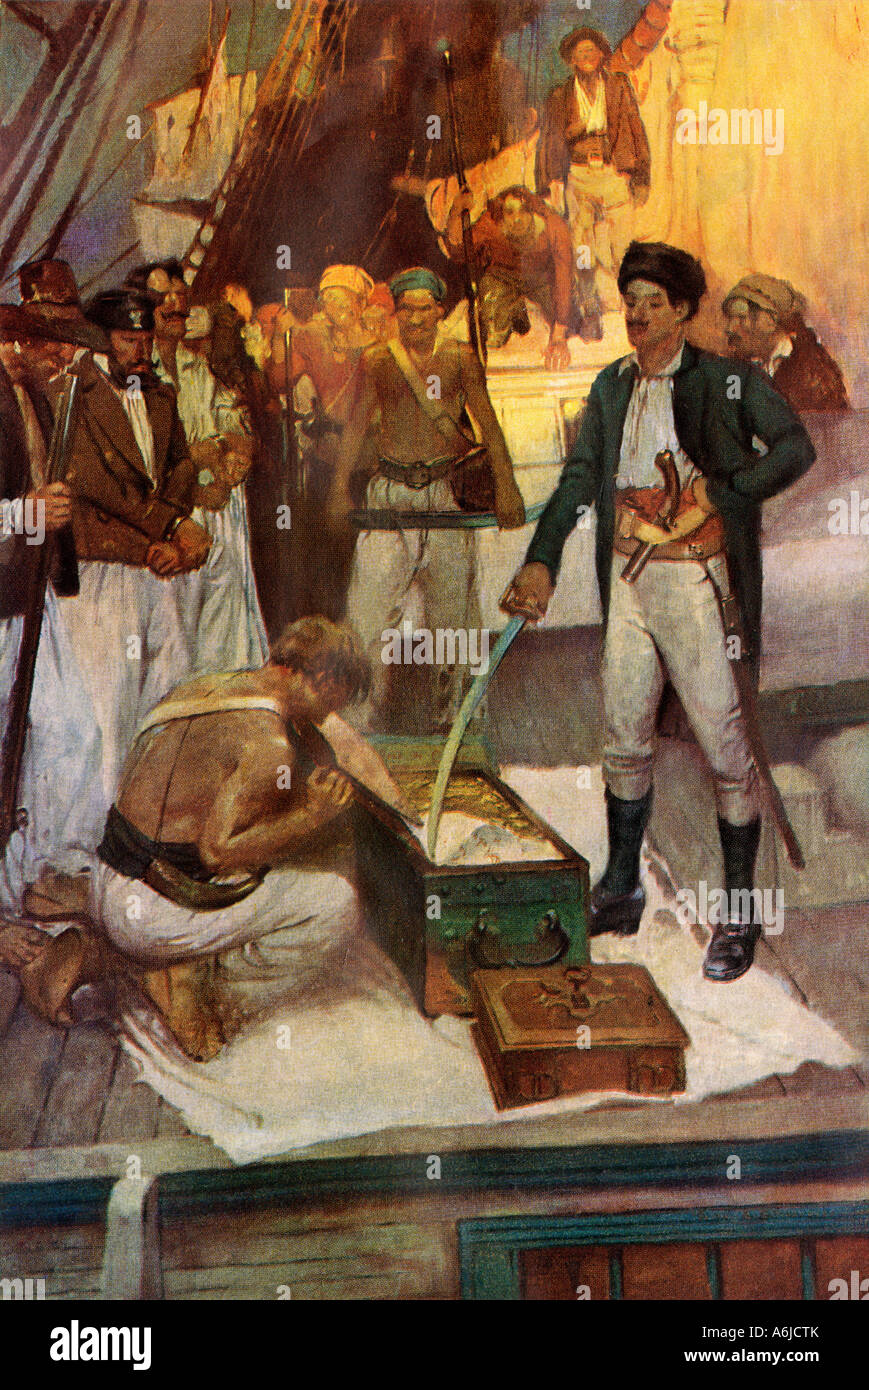 Pirate Jean Lafitte accepts a chest of ransom. Color halftone of a Frank Schoonover illustration - Stock Image